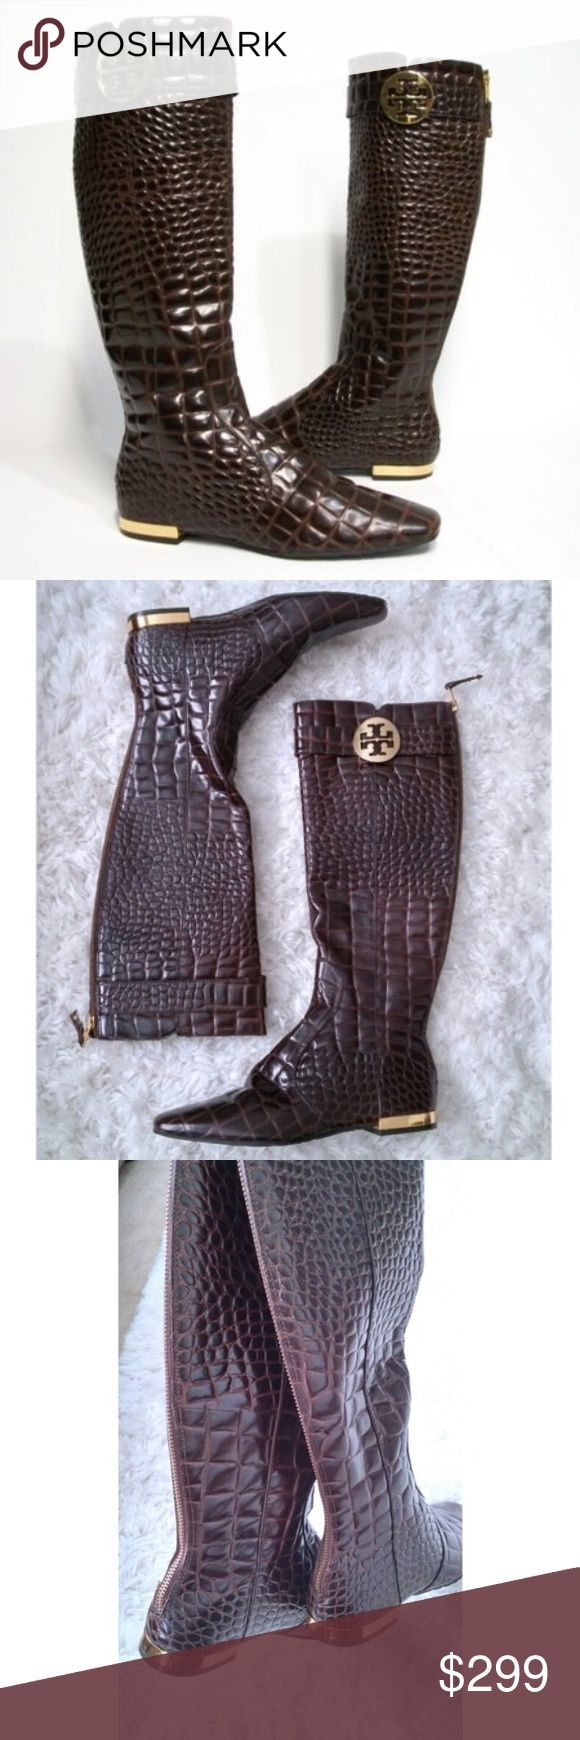 Tory Burch Brown Croc Leather Knee High Boots 6 Gorgeous Tory Burch Like New brown croc-embossed leather knee high boots.  Gold-toned hardware, back zippers and low gold-toned wrapped heel.  Women's Size 6  Excellent Condition Tory Burch Shoes Over the Knee Boots